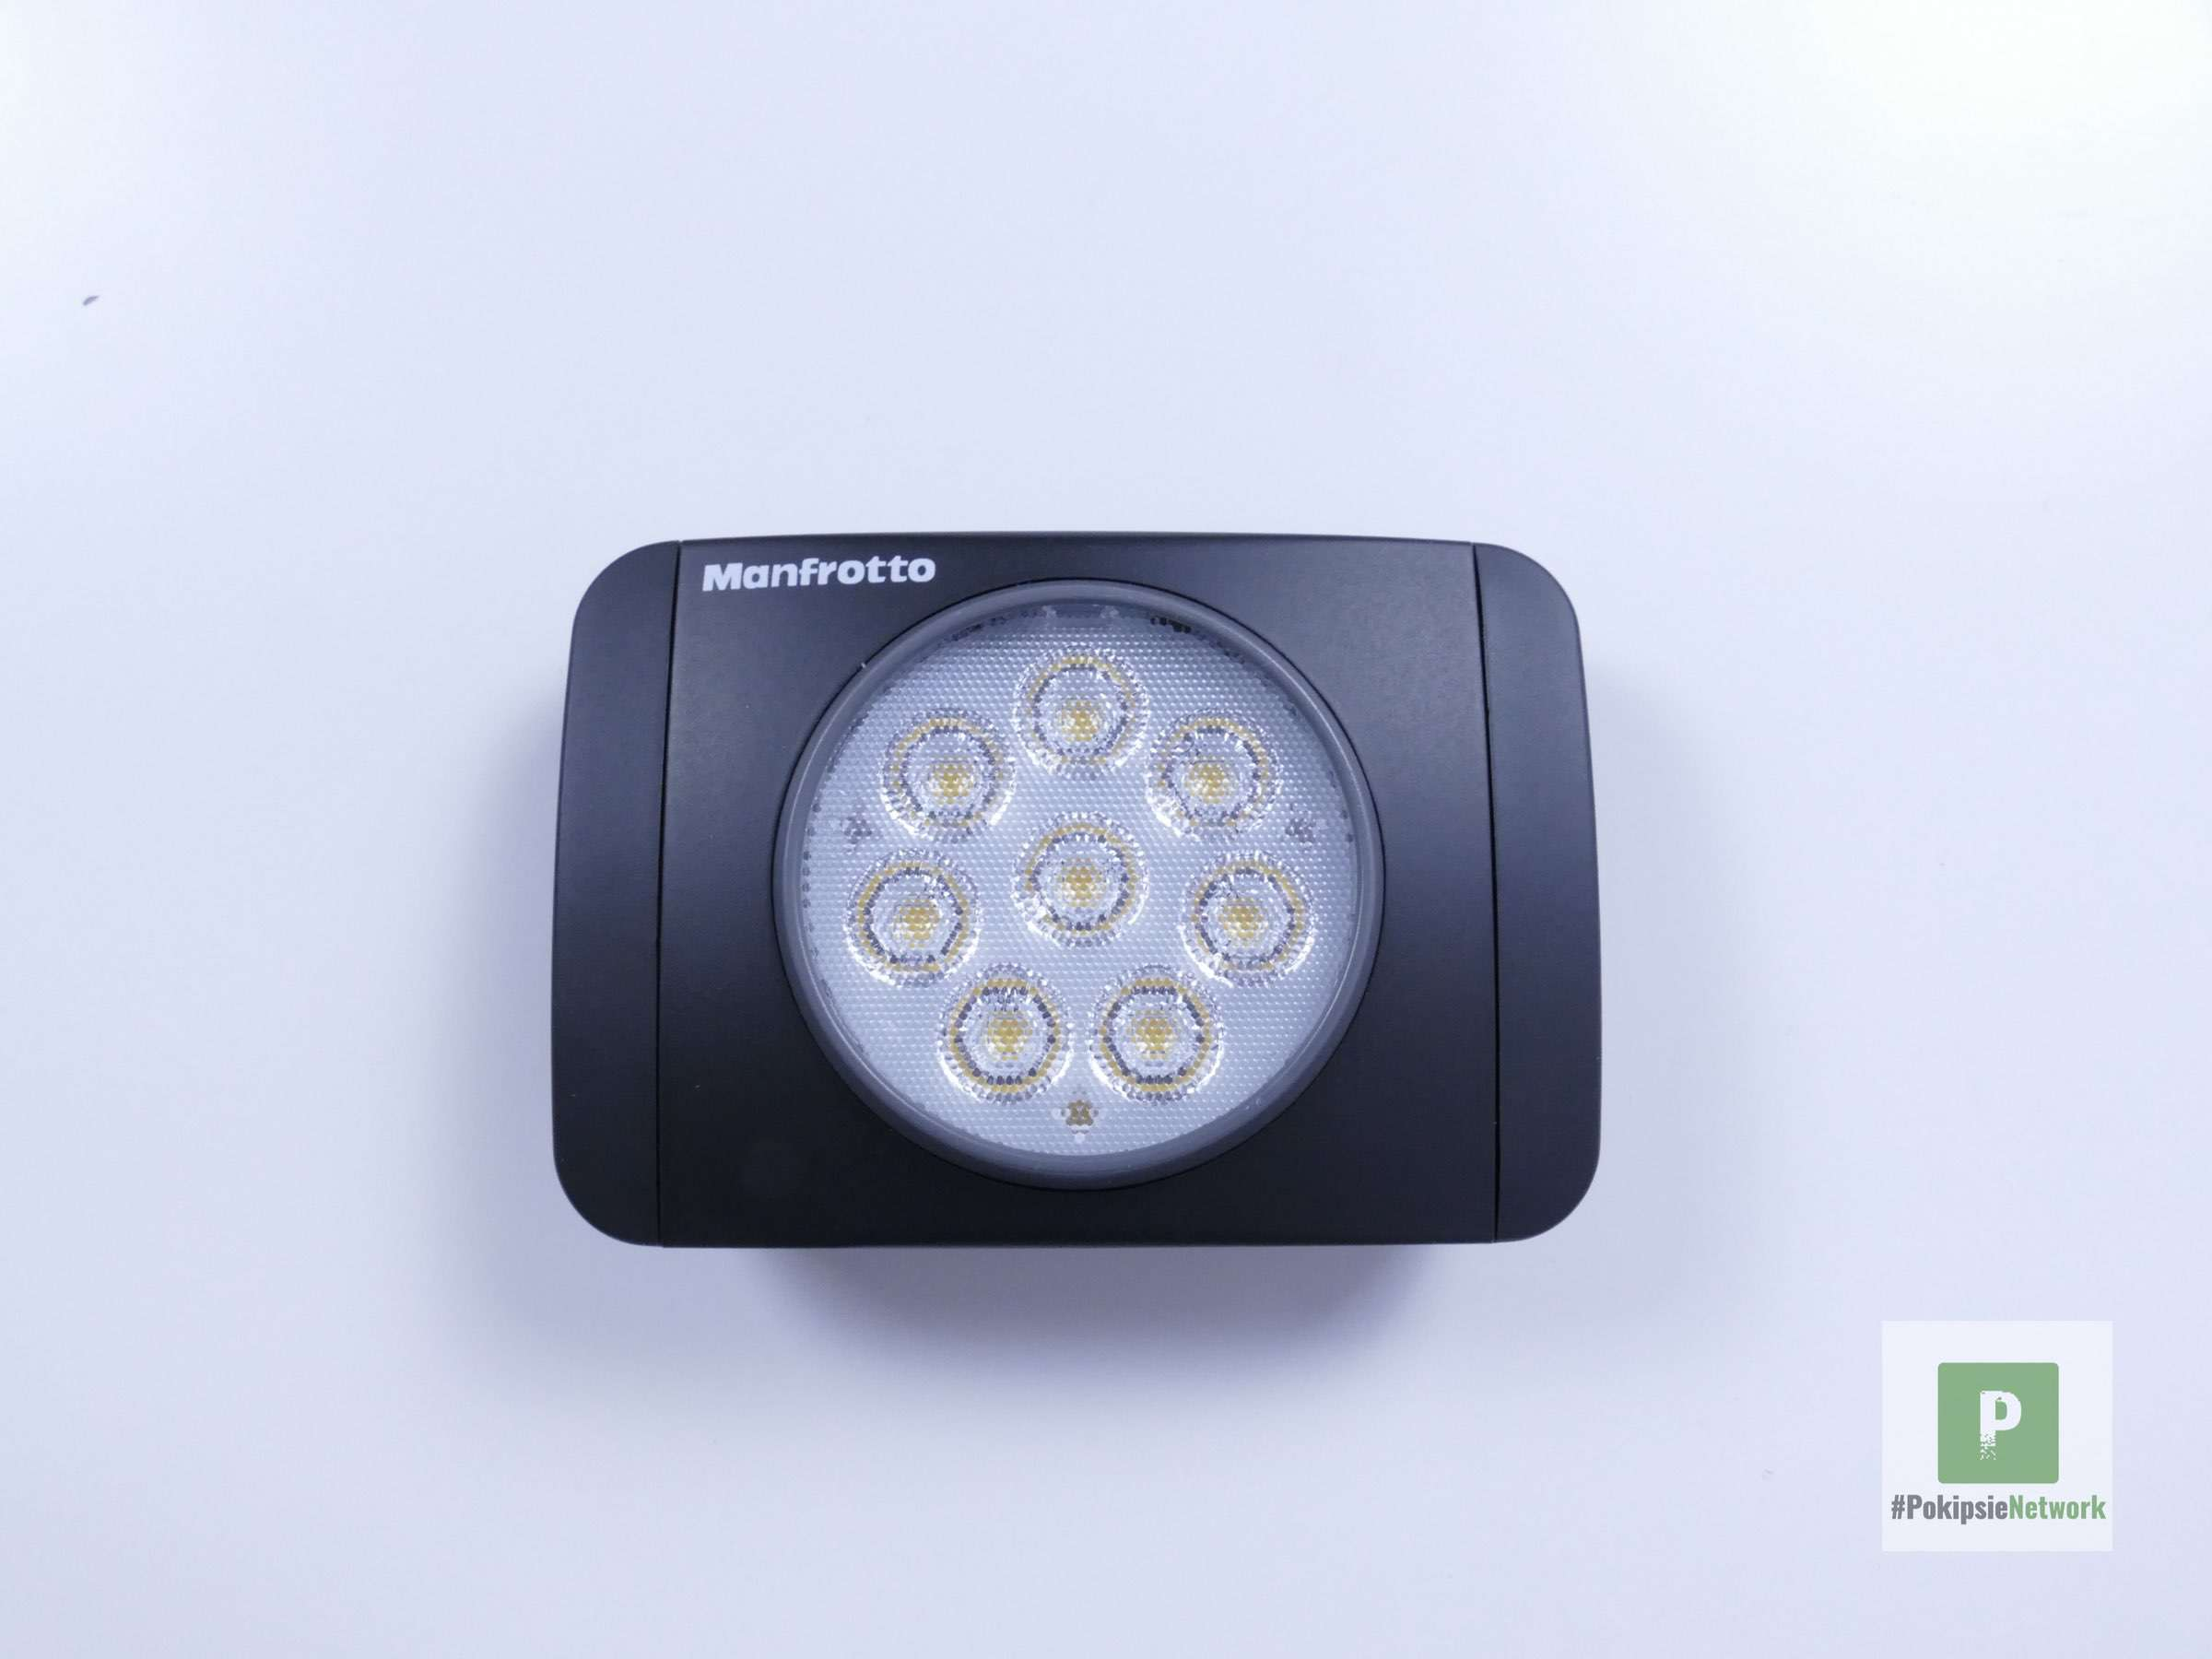 Manfrotto Lumimuse 8 Testbericht des High Power LED Lichts